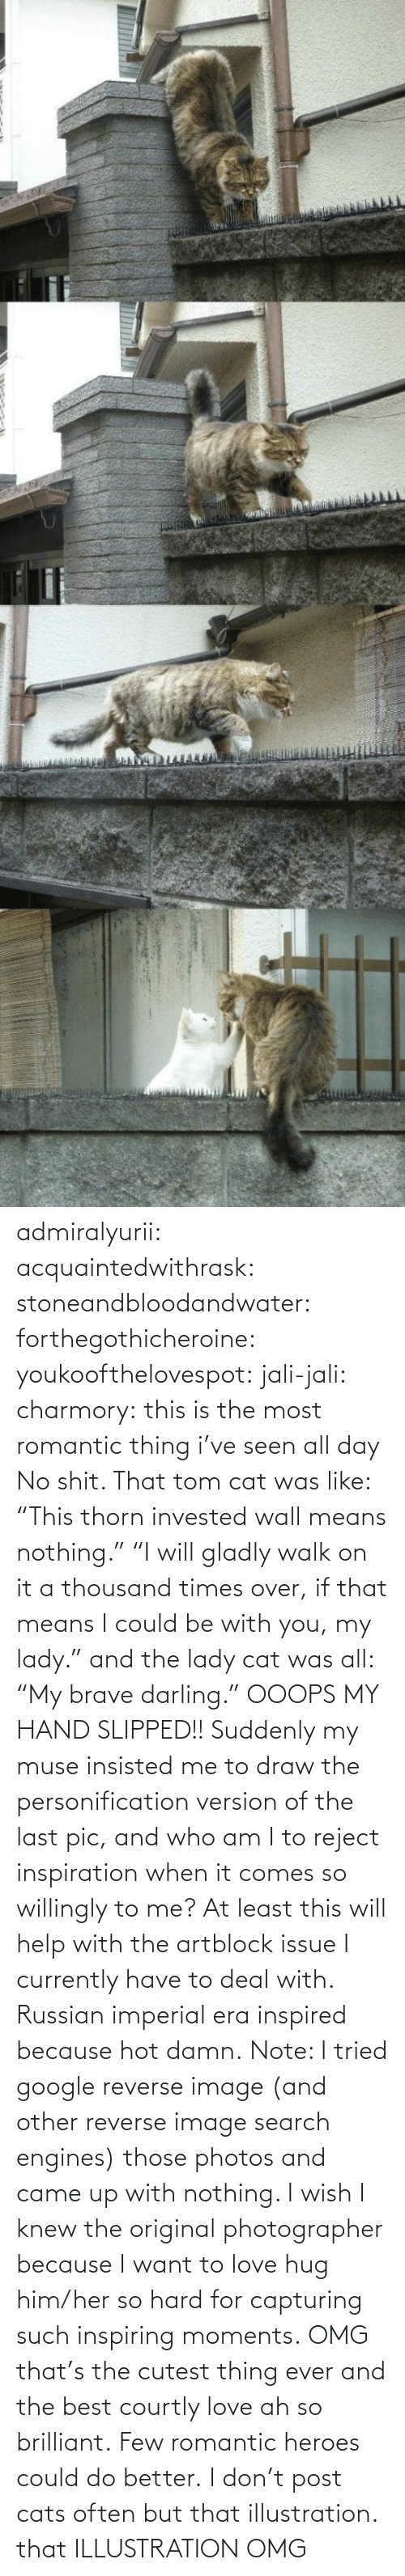 "lady: admiralyurii: acquaintedwithrask:  stoneandbloodandwater:  forthegothicheroine:  youkoofthelovespot:  jali-jali:  charmory:  this is the most romantic thing i've seen all day  No shit. That tom cat was like: ""This thorn invested wall means nothing."" ""I will gladly walk on it a thousand times over, if that means I could be with you, my lady."" and the lady cat was all: ""My brave darling."" OOOPS MY HAND SLIPPED!!  Suddenly my muse insisted me to draw the personification version of the last pic, and who am I to reject inspiration when it comes so willingly to me? At least this will help with the artblock issue I currently have to deal with. Russian imperial era inspired because hot damn. Note: I tried google reverse image (and other reverse image search engines) those photos and came up with nothing. I wish I knew the original photographer because I want to love hug him/her so hard for capturing such inspiring moments.  OMG that's the cutest thing ever and the best courtly love ah so brilliant.  Few romantic heroes could do better.  I don't post cats often but that illustration.  that ILLUSTRATION    OMG"